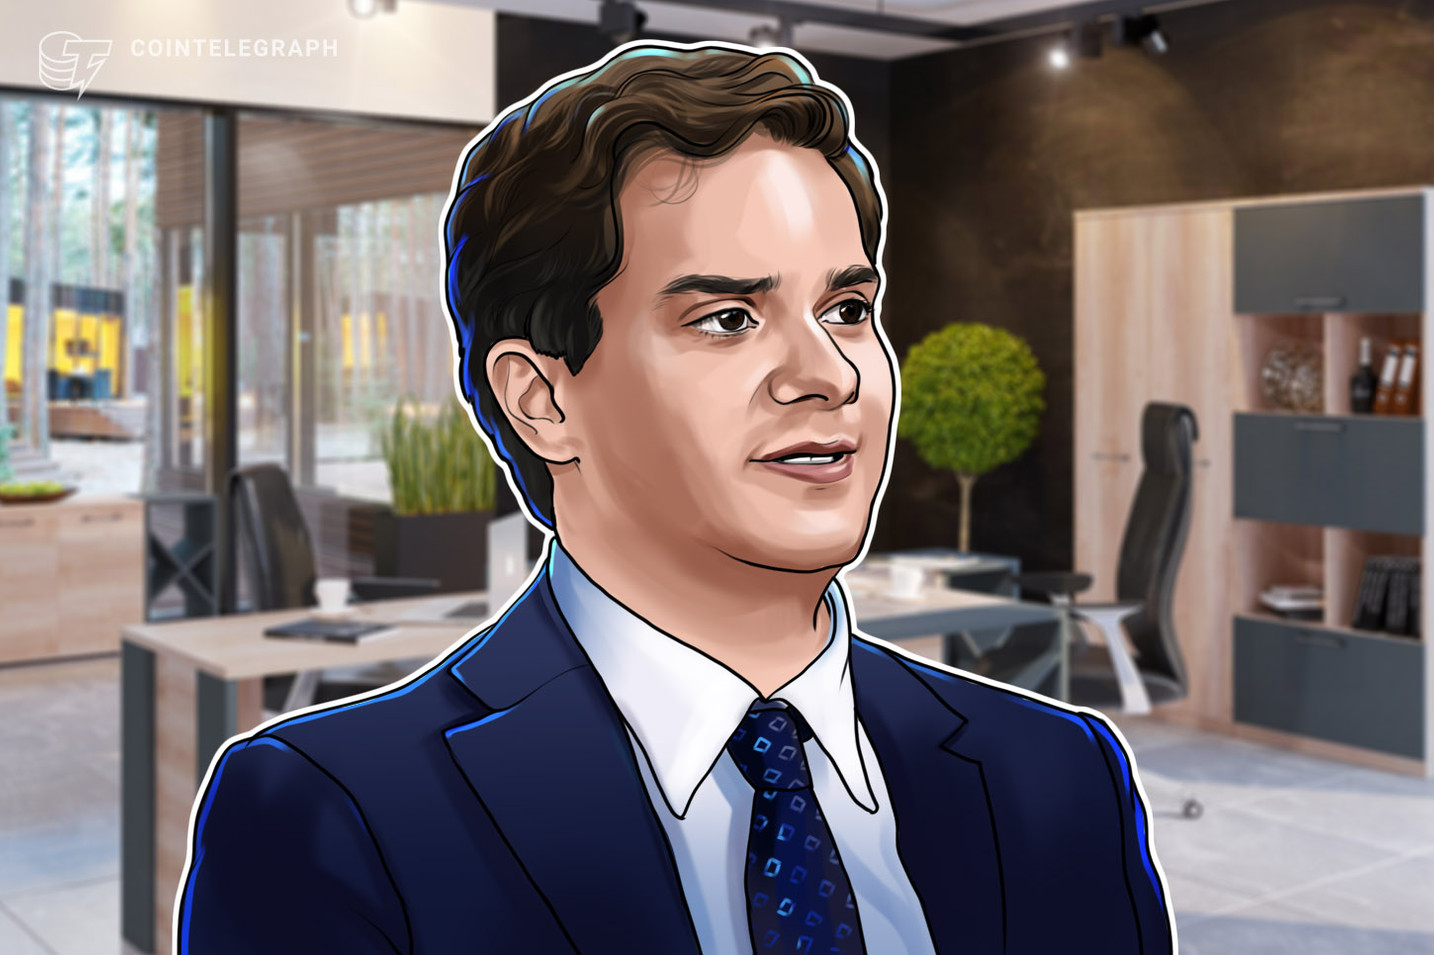 Karpeles Says Mt Gox Verdict May Set 'Dangerous' Precedent